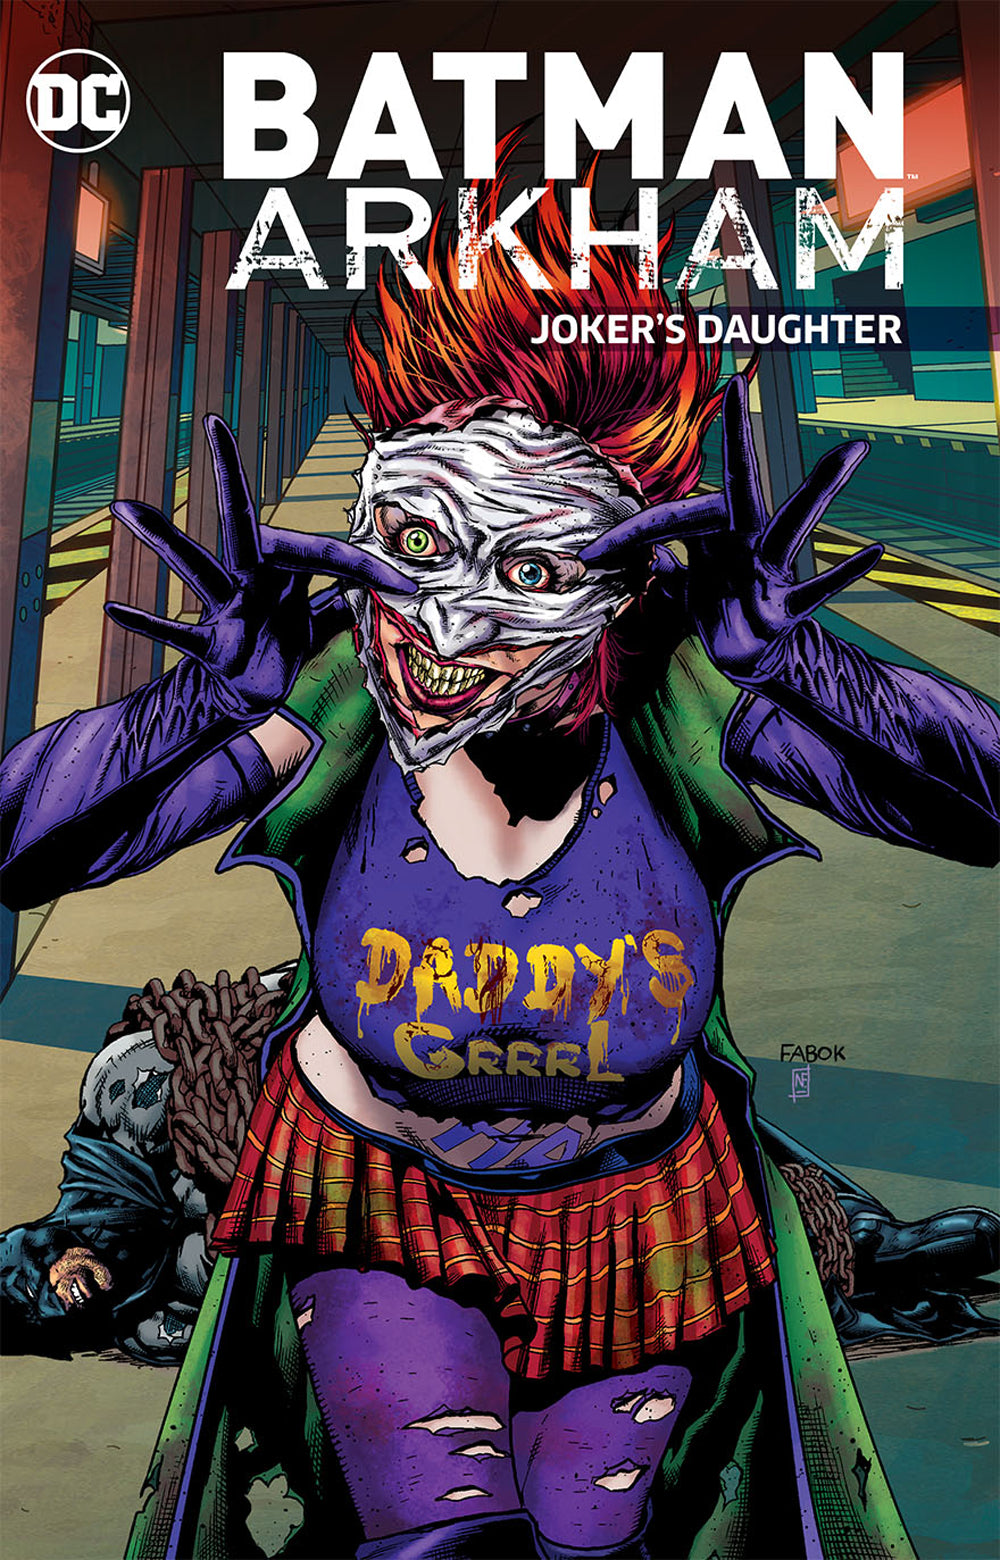 Joker's Daughter wears what appears to be the flesh of the Joker's face on top of hers.